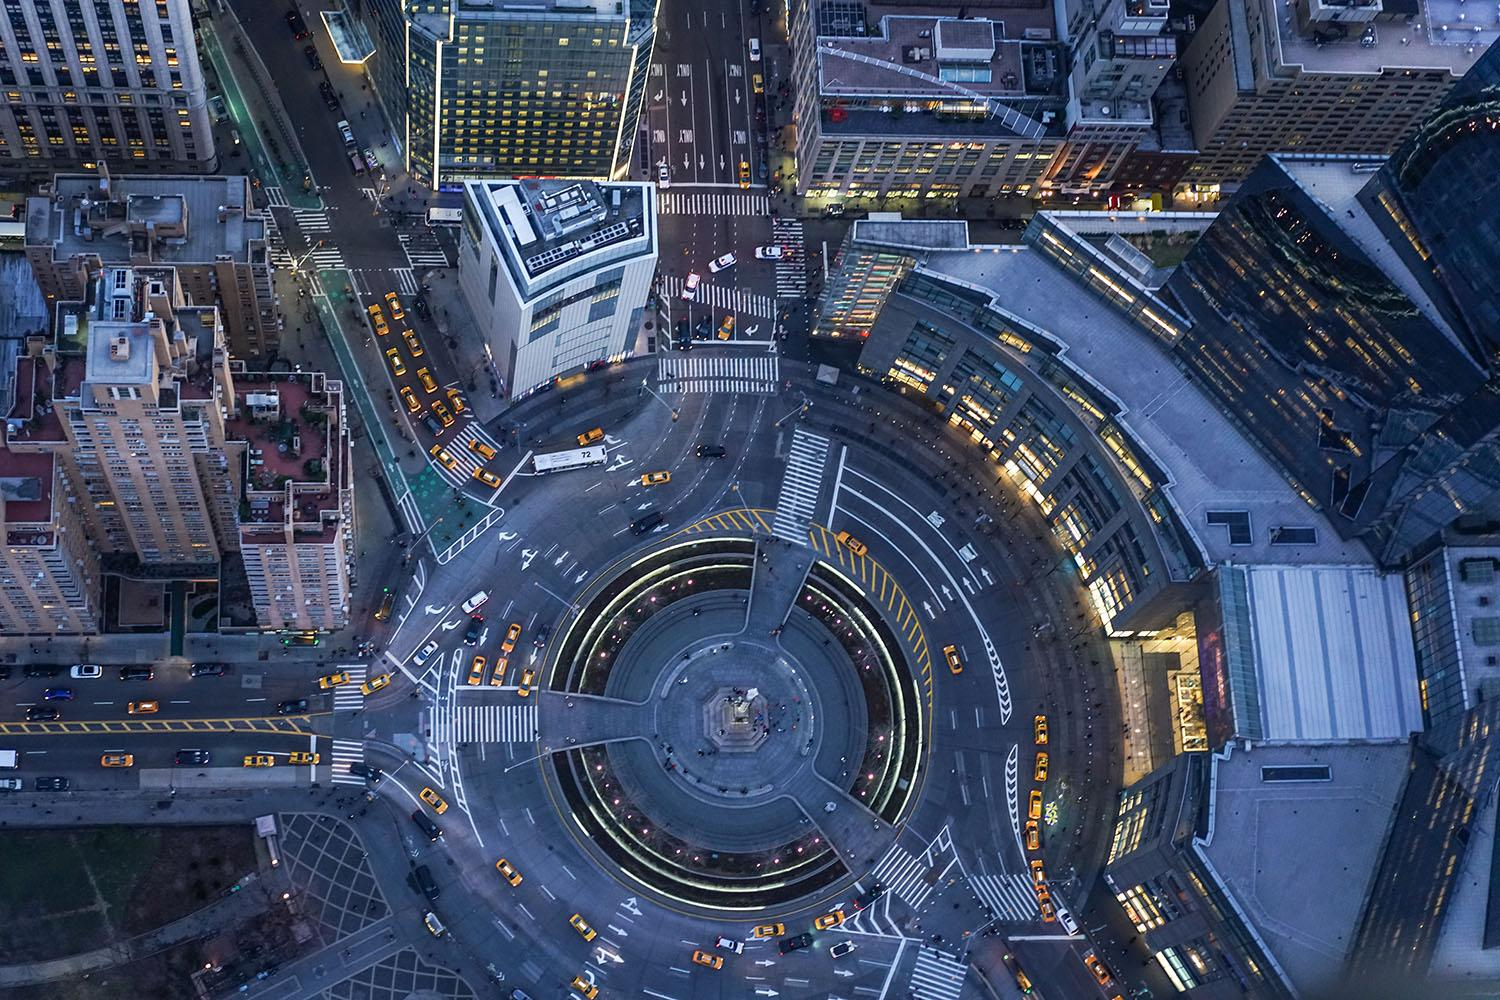 Aerial view of a city roundabout at night